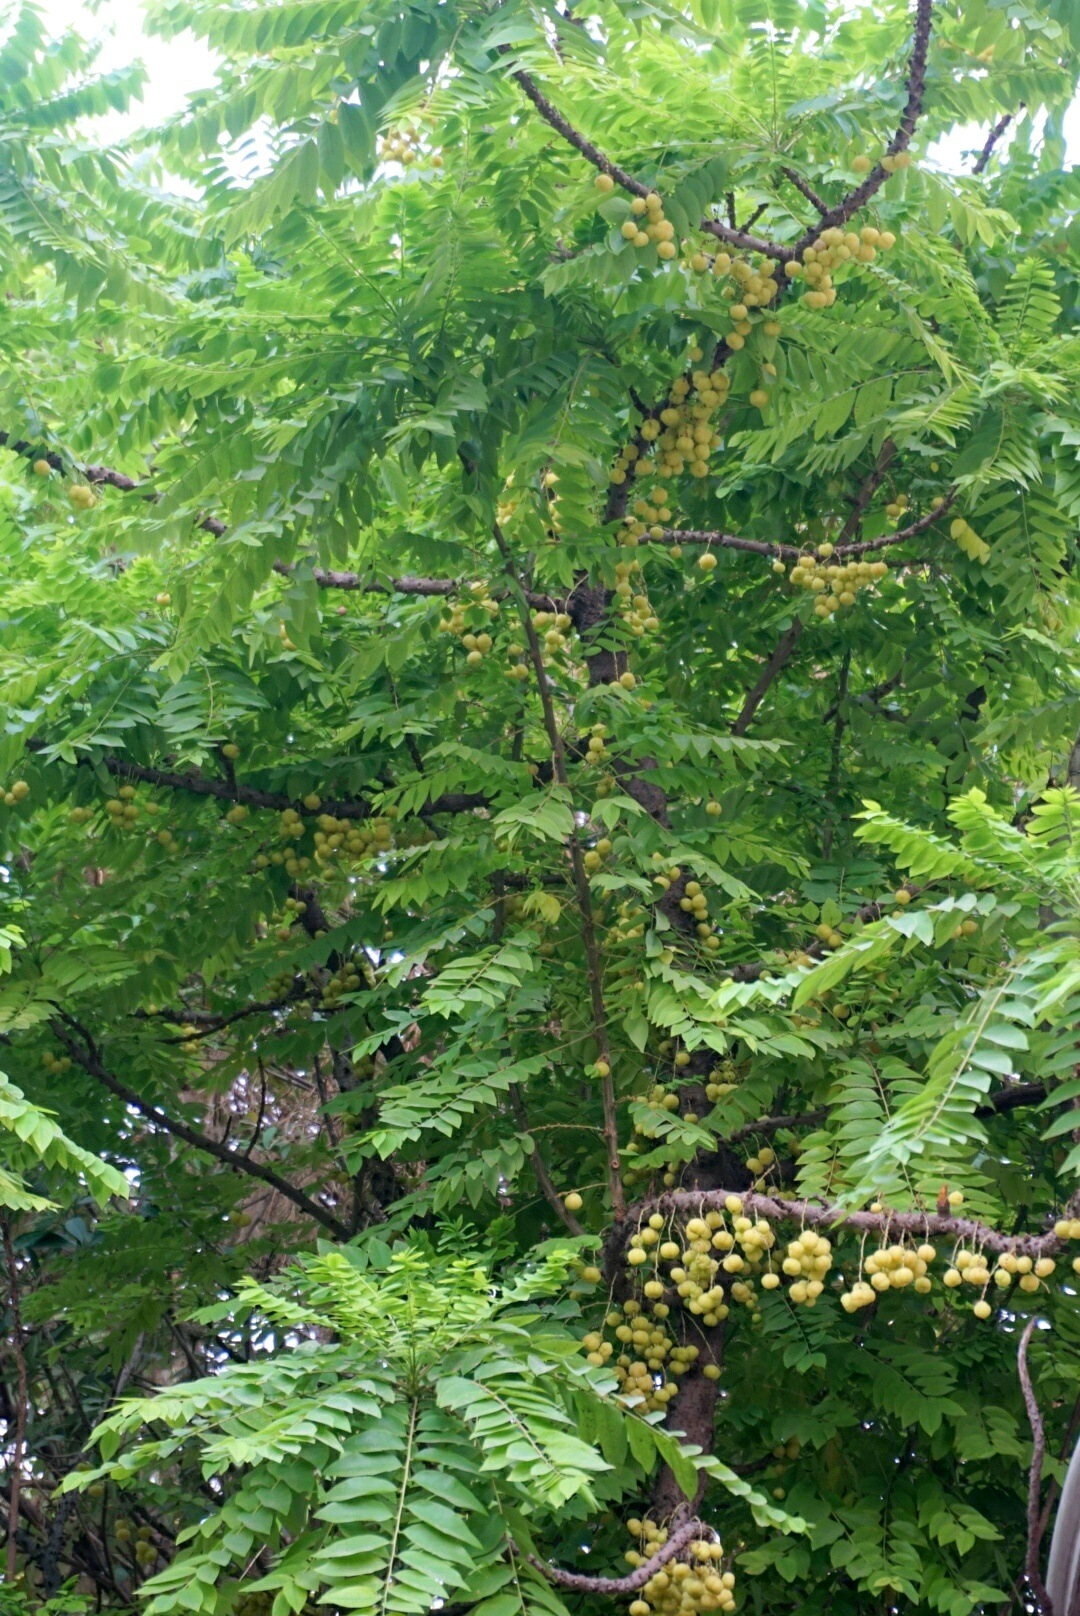 Fruit full /4 by Suresh Tewari